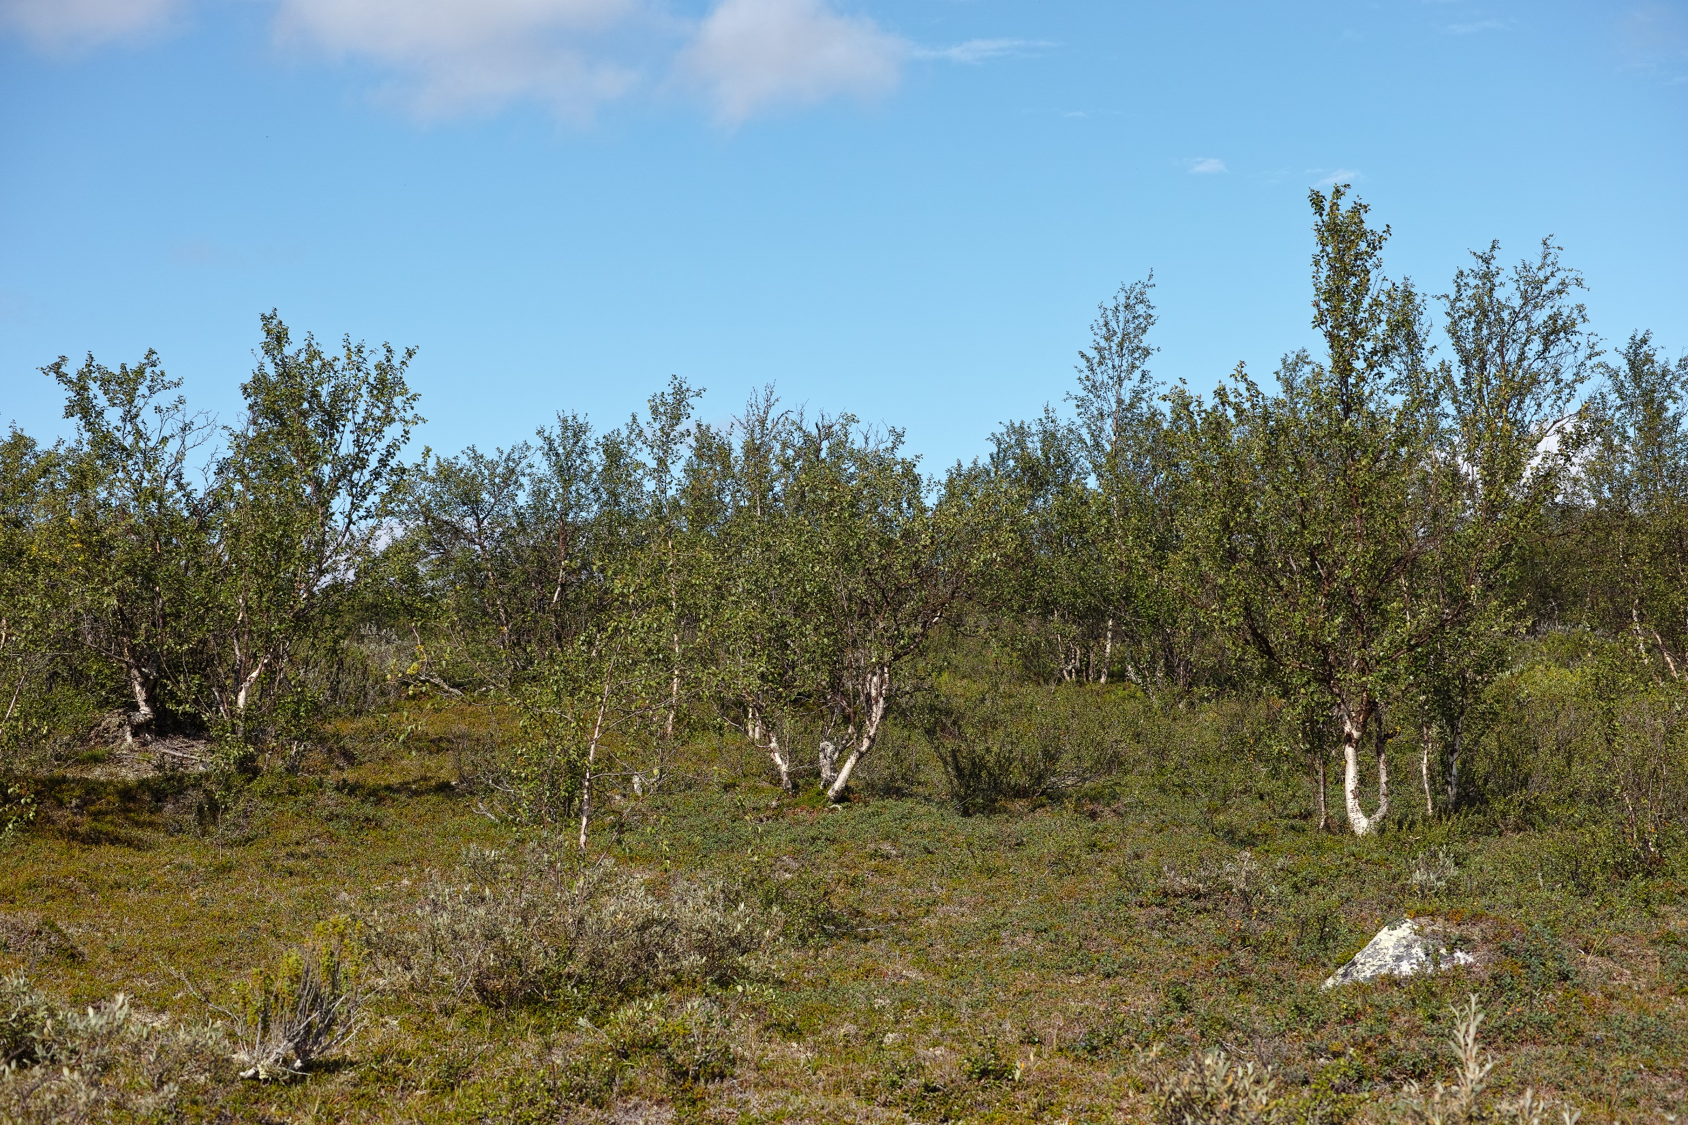 Northern-boreal mountain birch forest. Photo: Jakob Iglhaut.